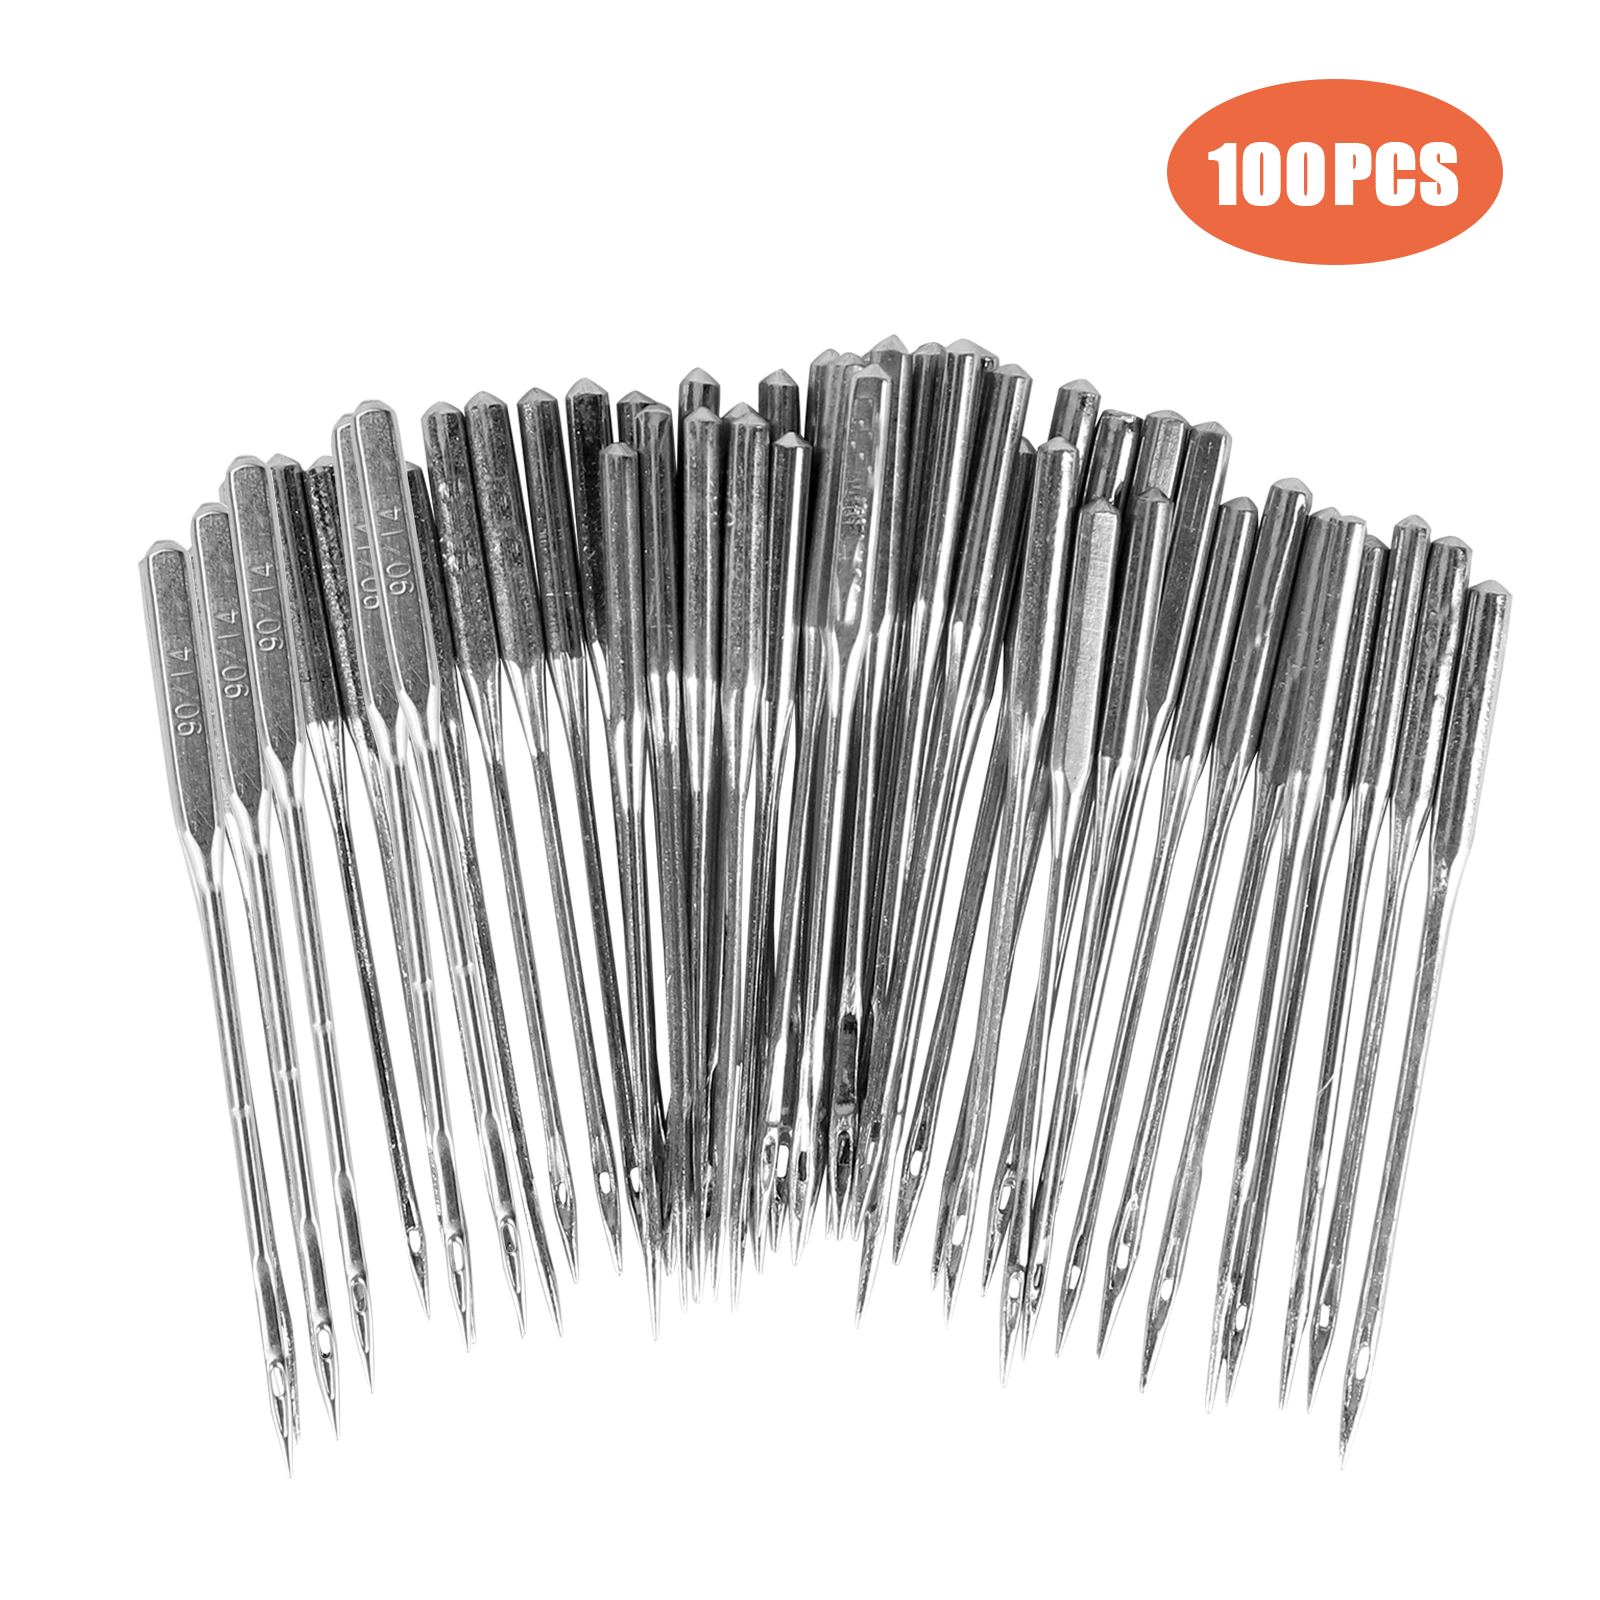 100PCS-Threading-Singer-Sewing-Machine-Needles-For-Domestic-Home-Household-14-90 thumbnail 9